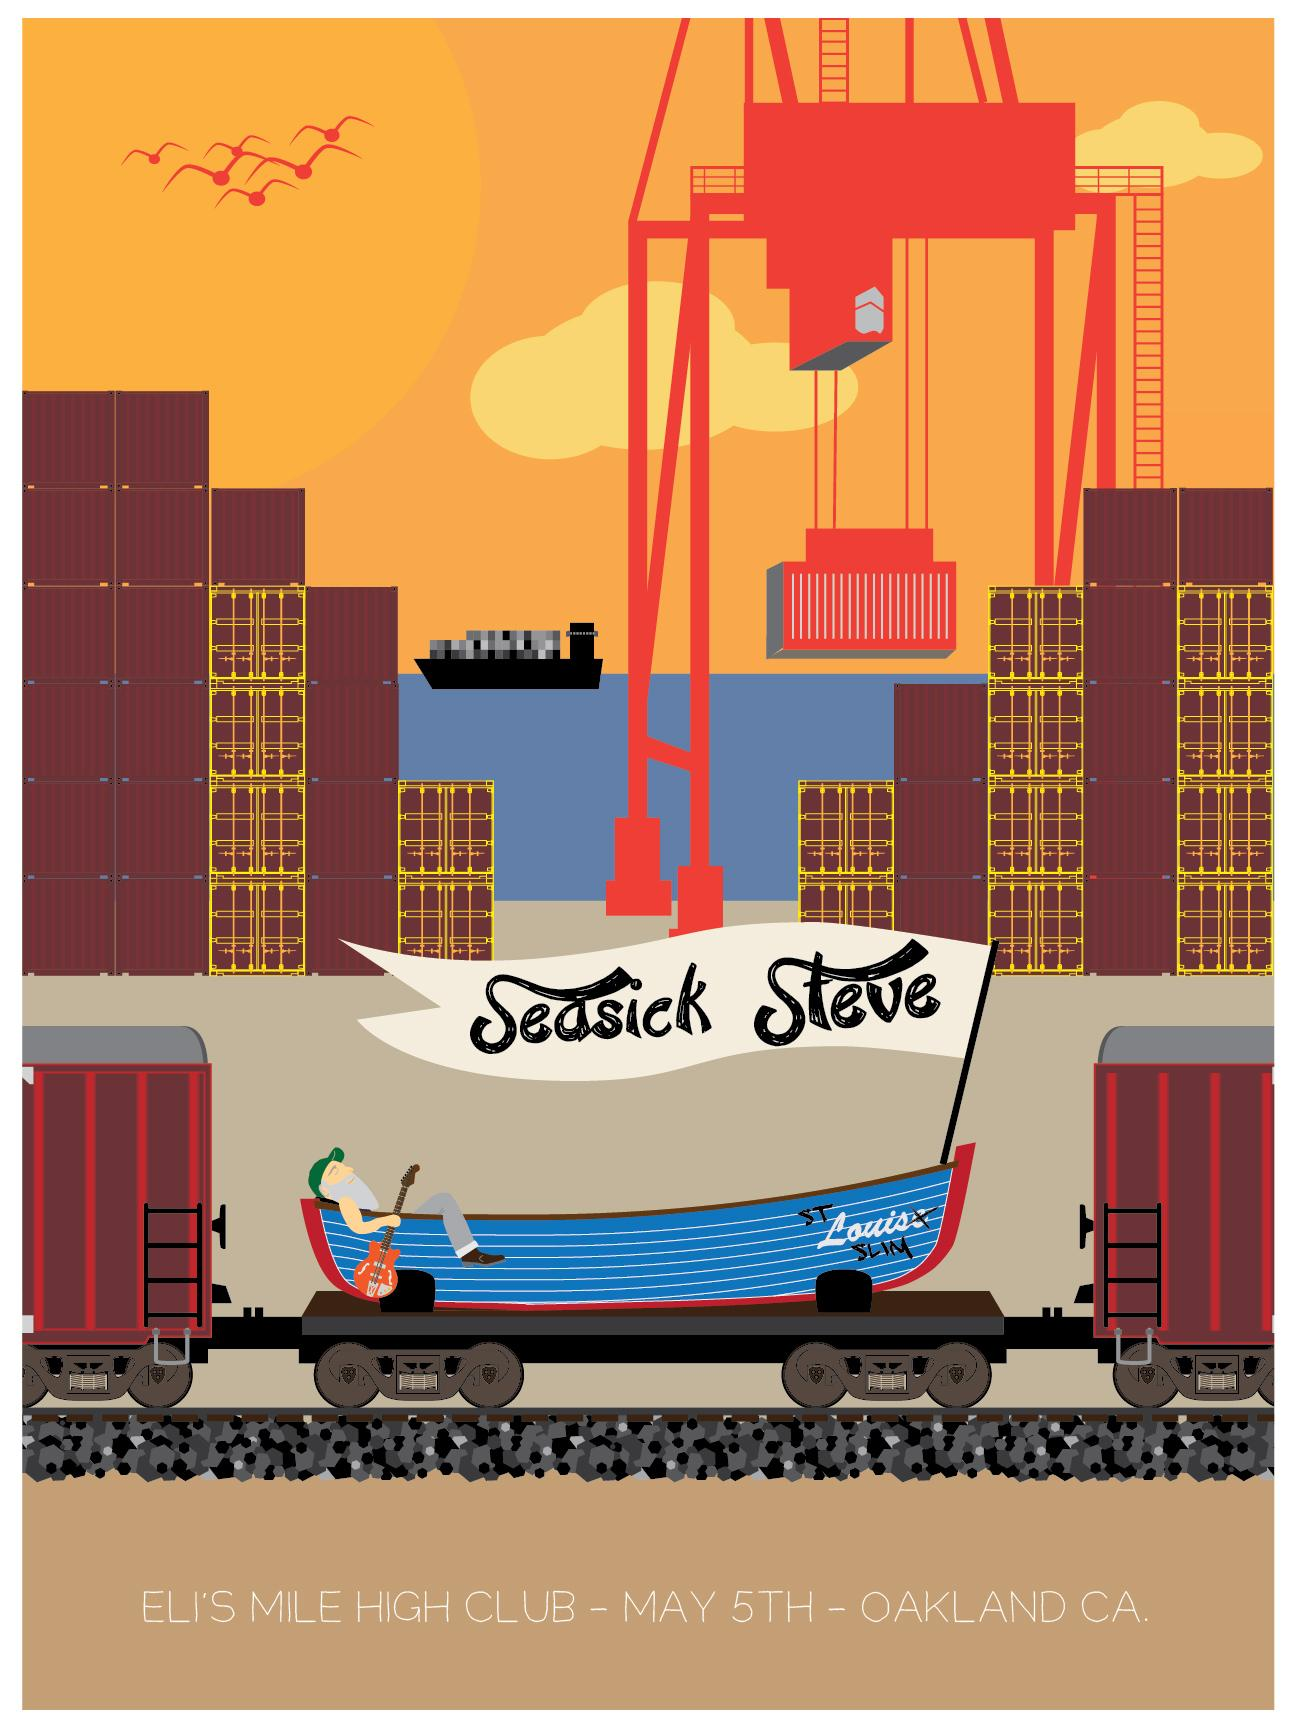 Final (For Now) Seasick Steve in Oakland - image 13 - student project